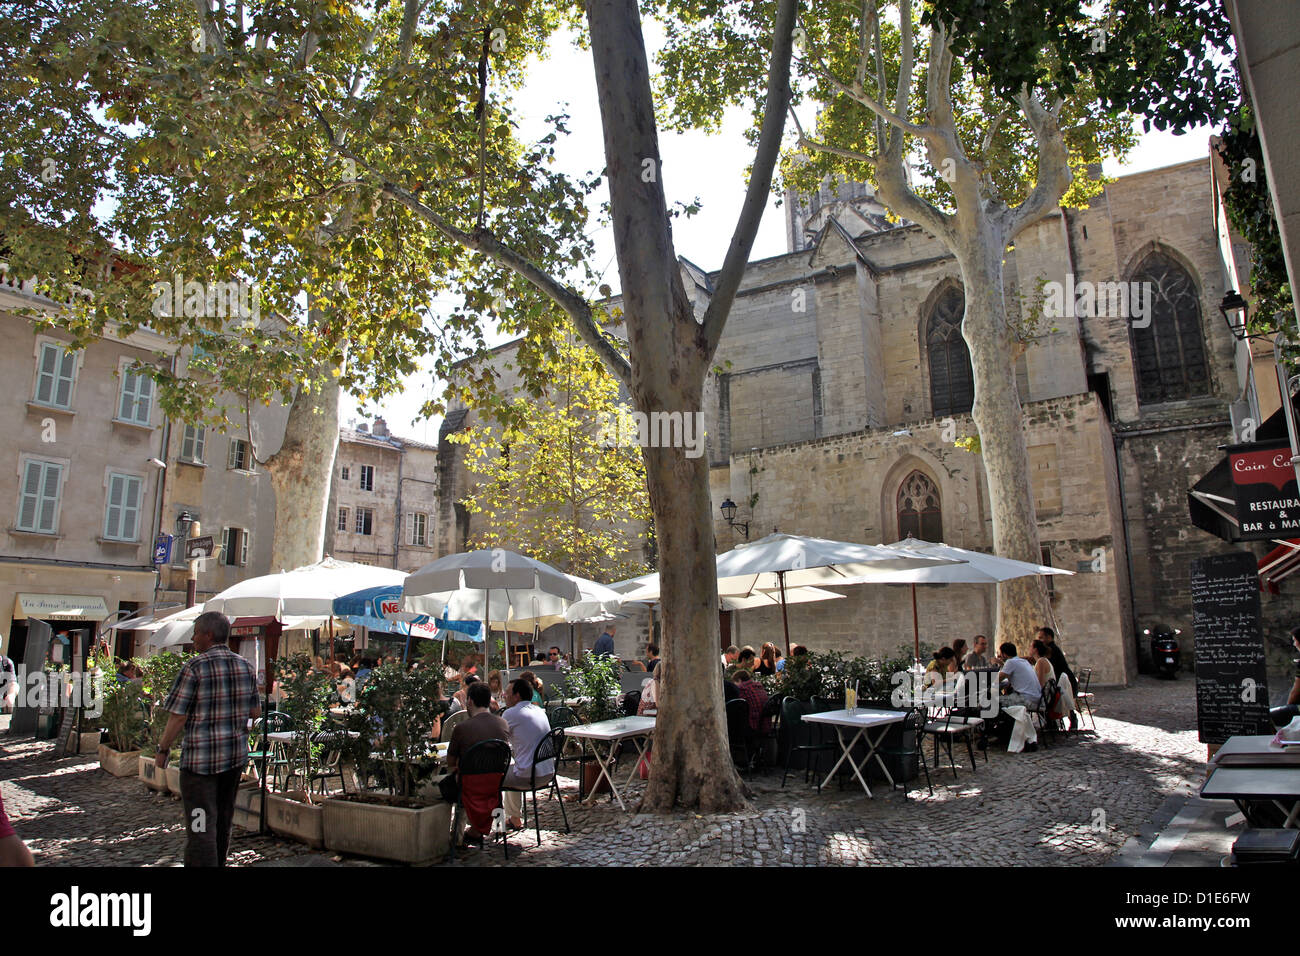 Street cafes in the old city of Avignon, Vaucluse, Provence, France, Europe Stock Photo